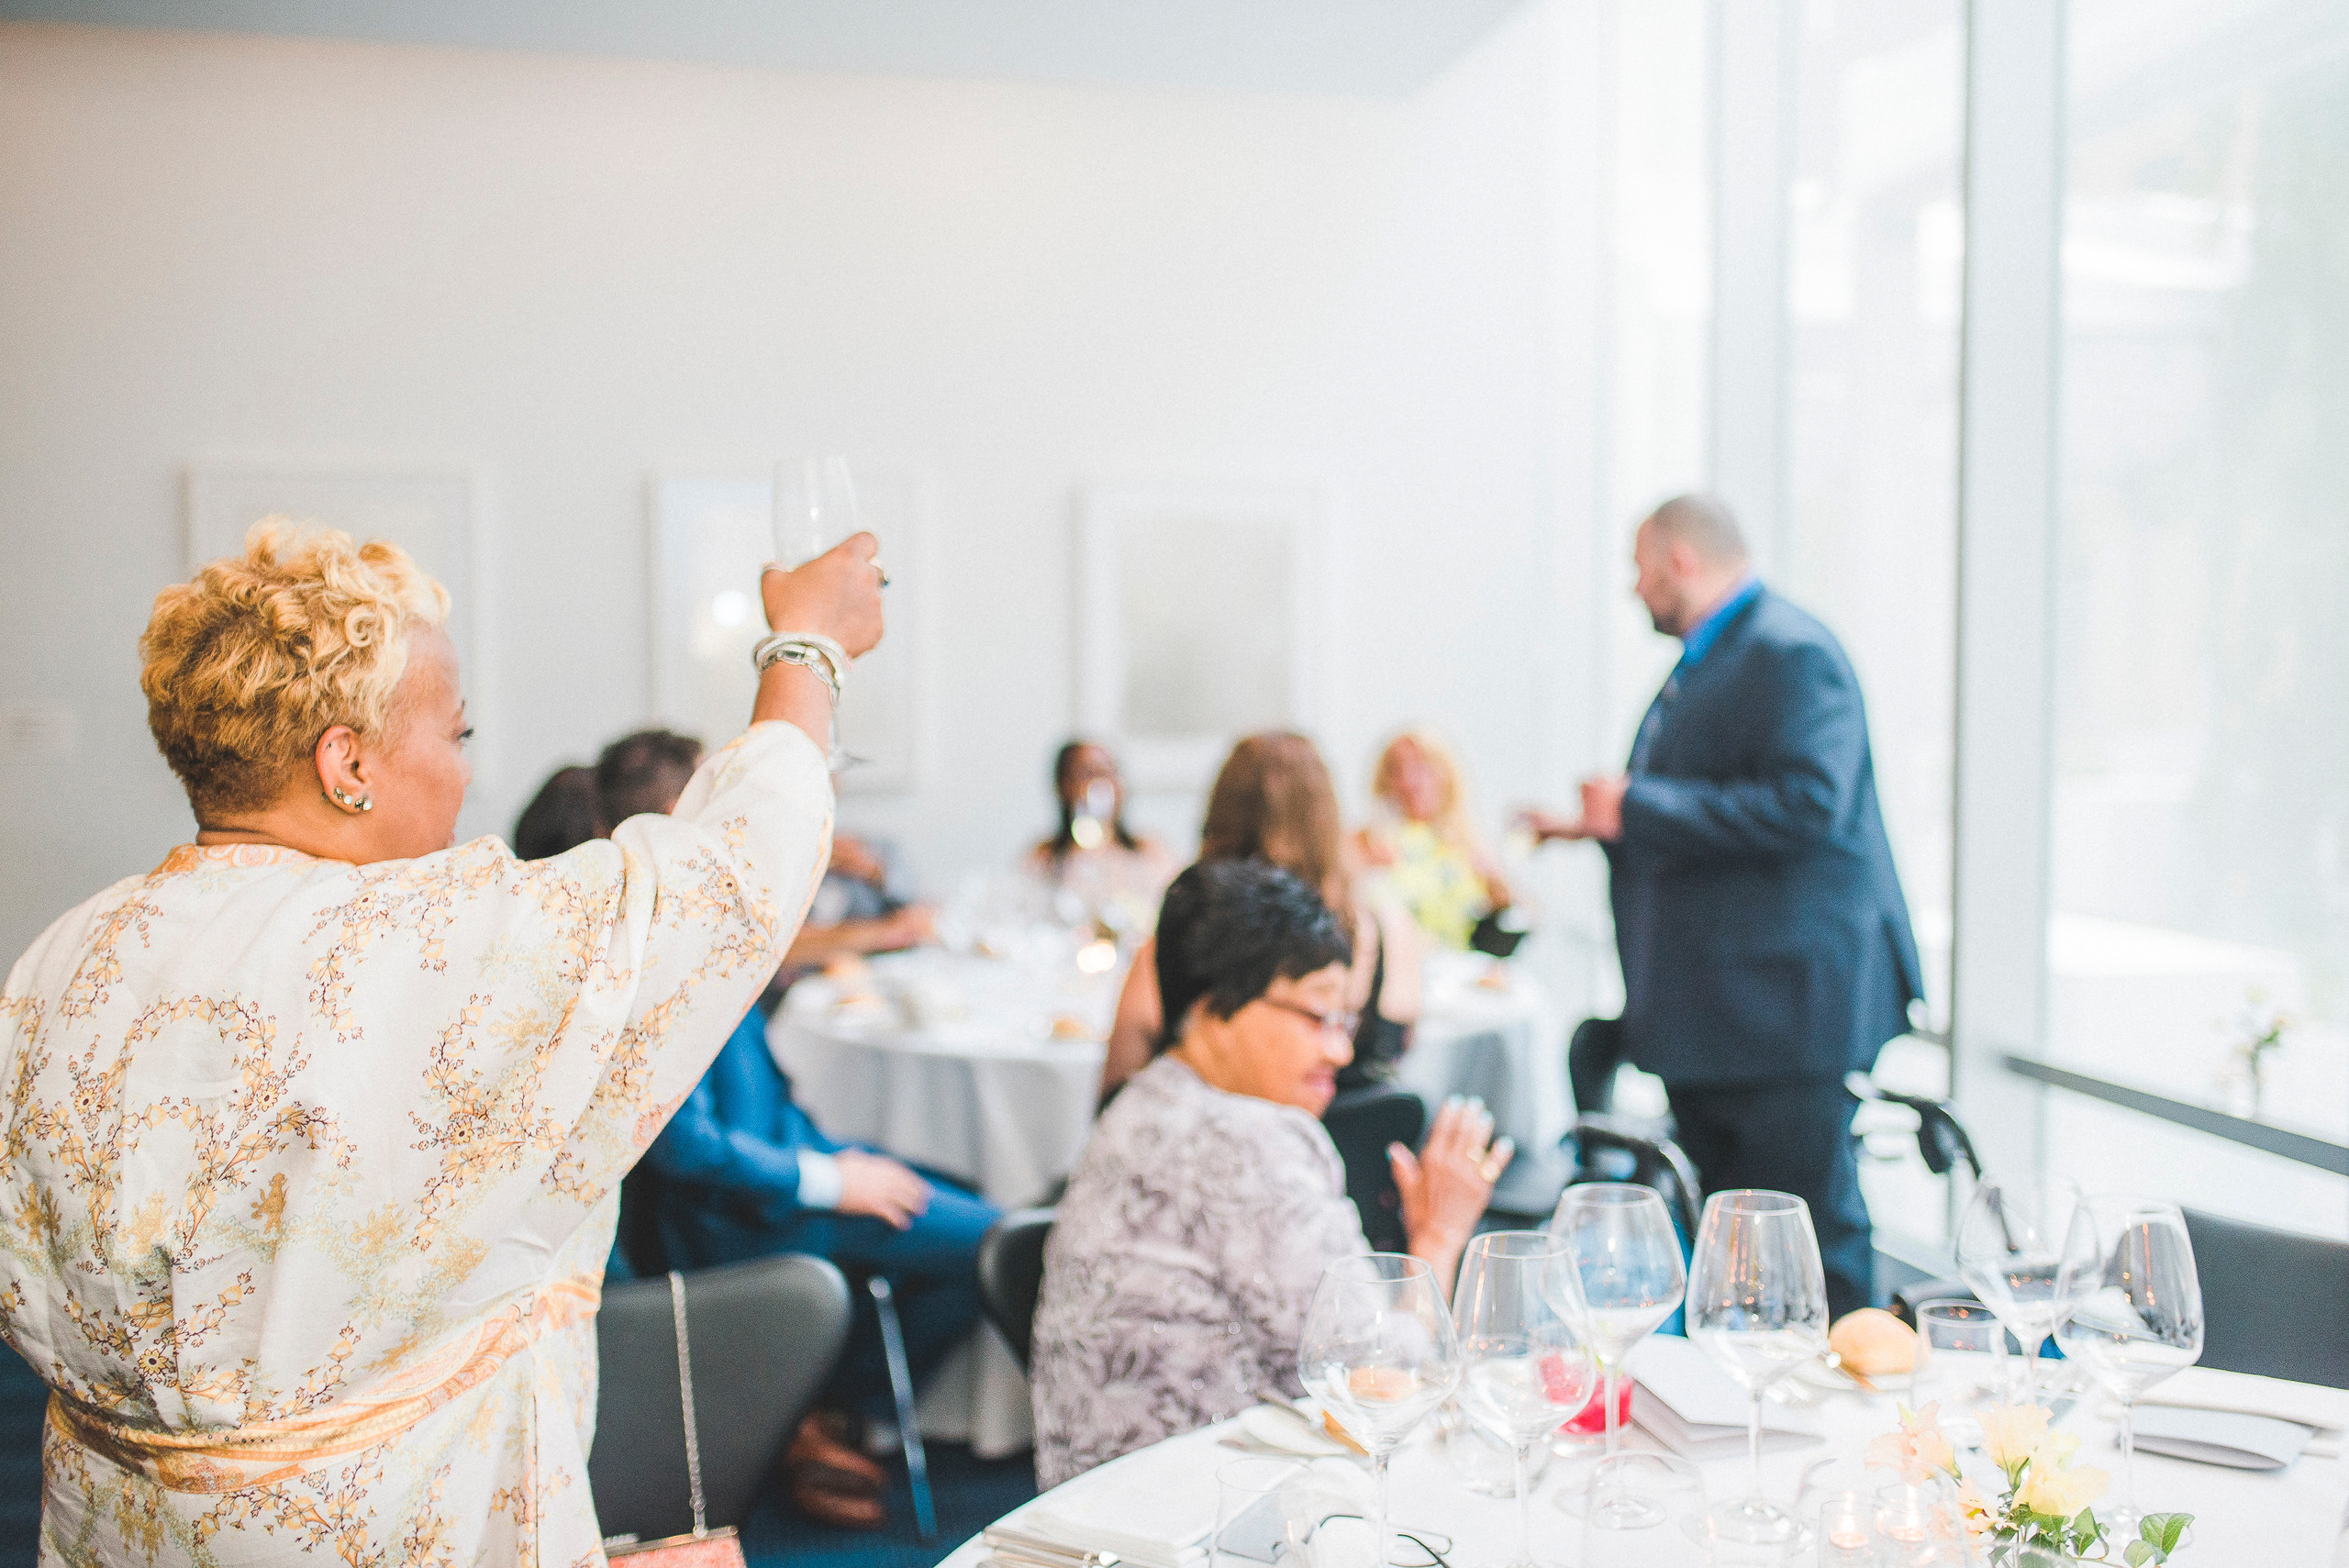 Wedding toast the modern NYC midtown manhattan wedding reception speech toast champagne drinks